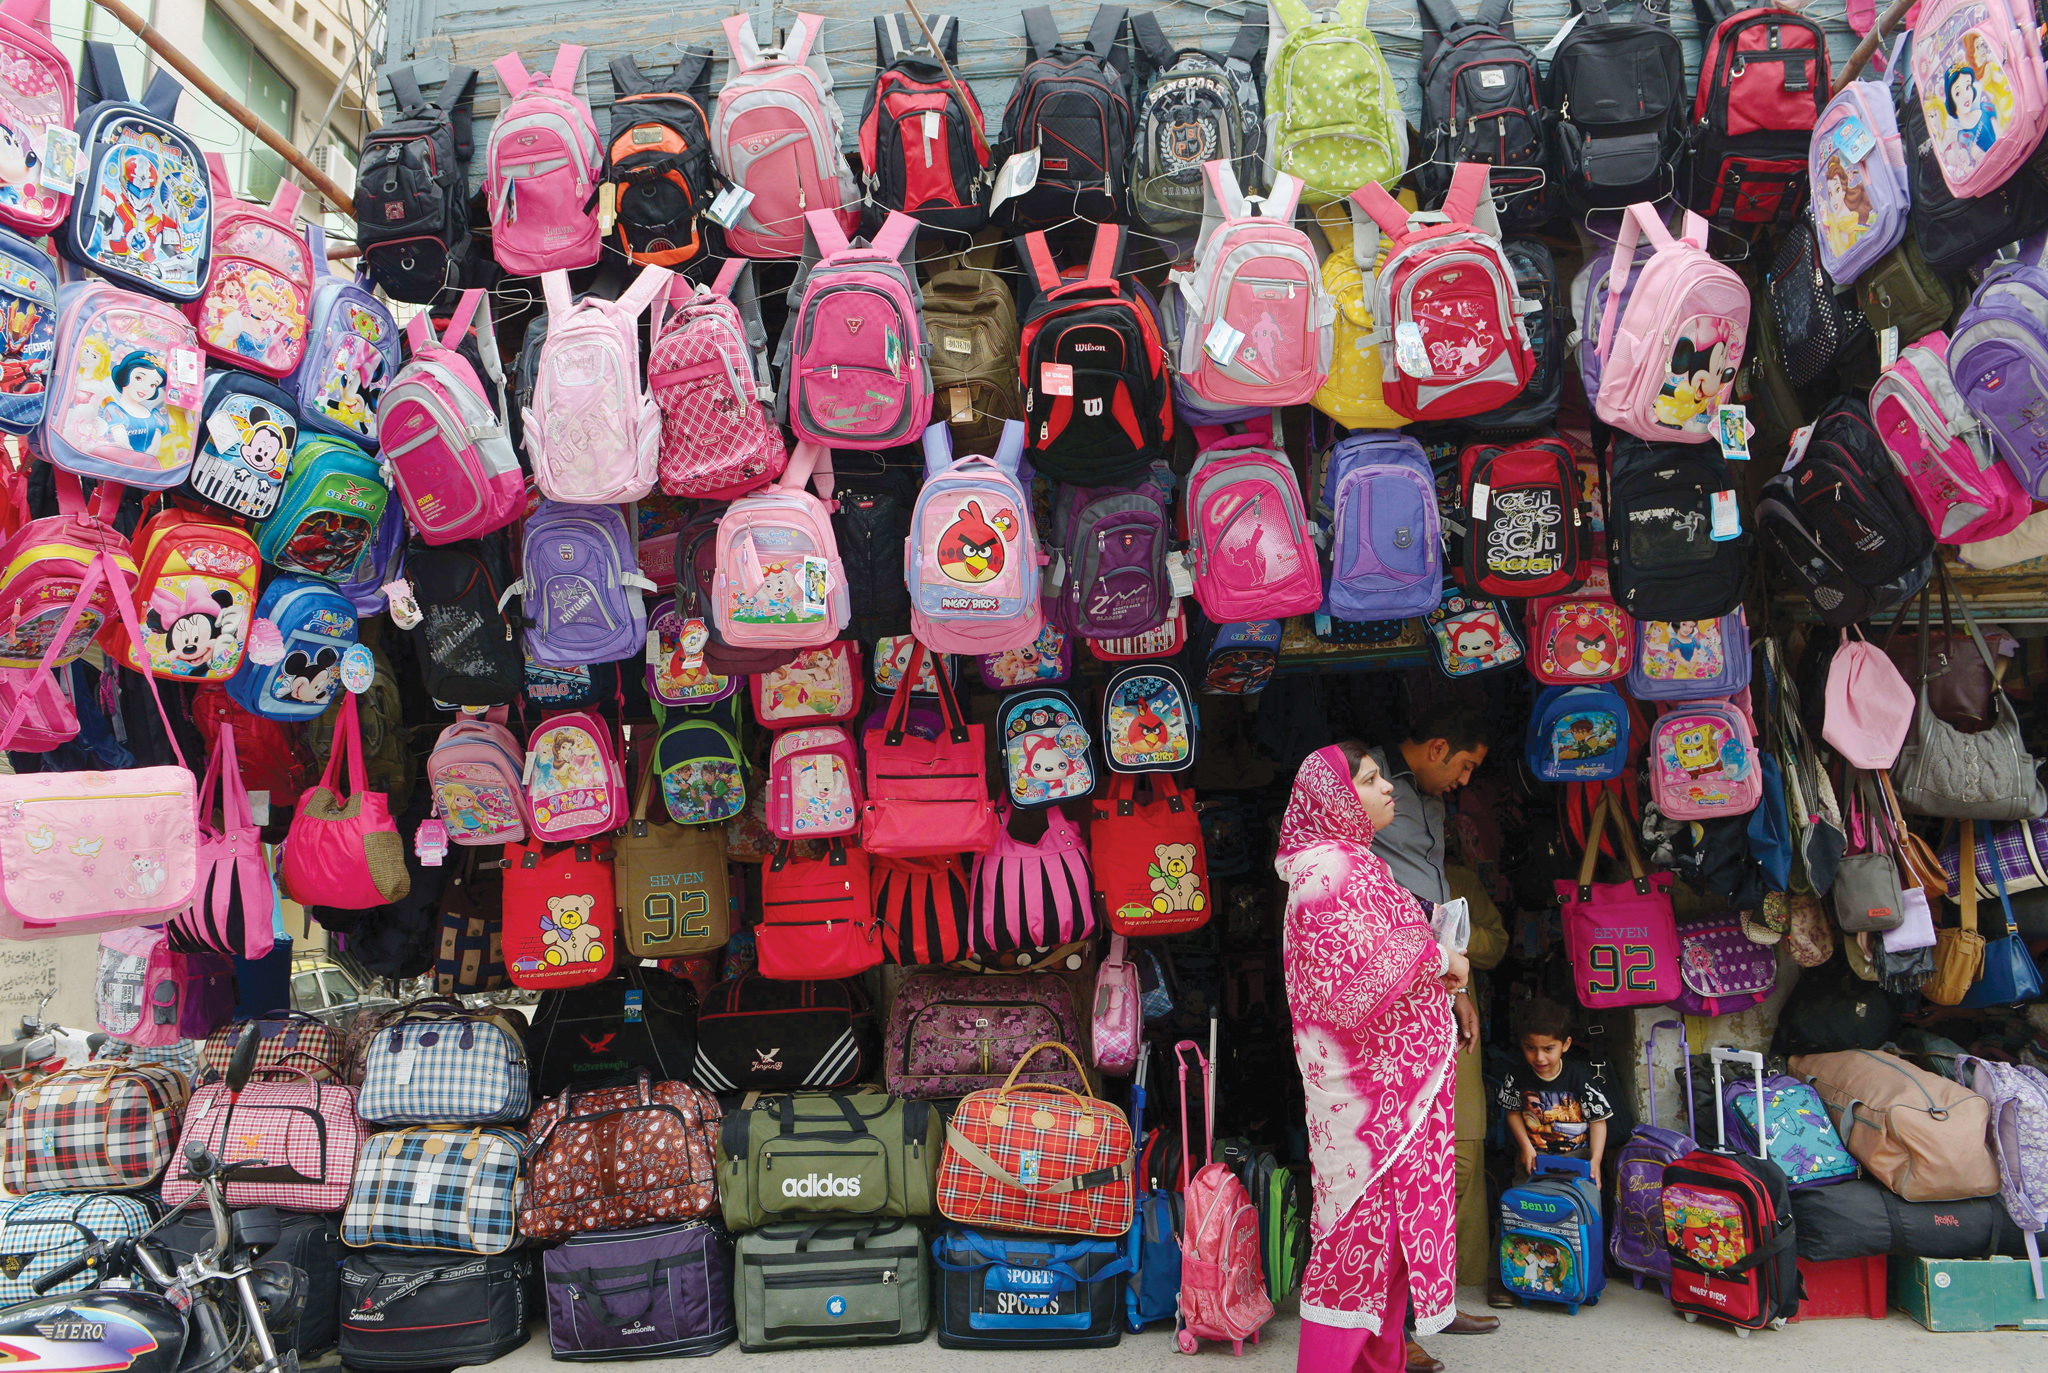 TOPSHOTS A Pakistani family chooses a sc...TOPSHOTS A Pakistani family chooses a school bag at a shop in Rawalpindi on April 15, 2014. Pakistan has re-entered the international bond market after a seven-year gap, the finance ministry said Wednesday, raising $2 billion to boost dwindling foreign exchange reserves and shore up the rupee.  AFP PHOTO/Farooq NAEEMFAROOQ NAEEM/AFP/Getty Images